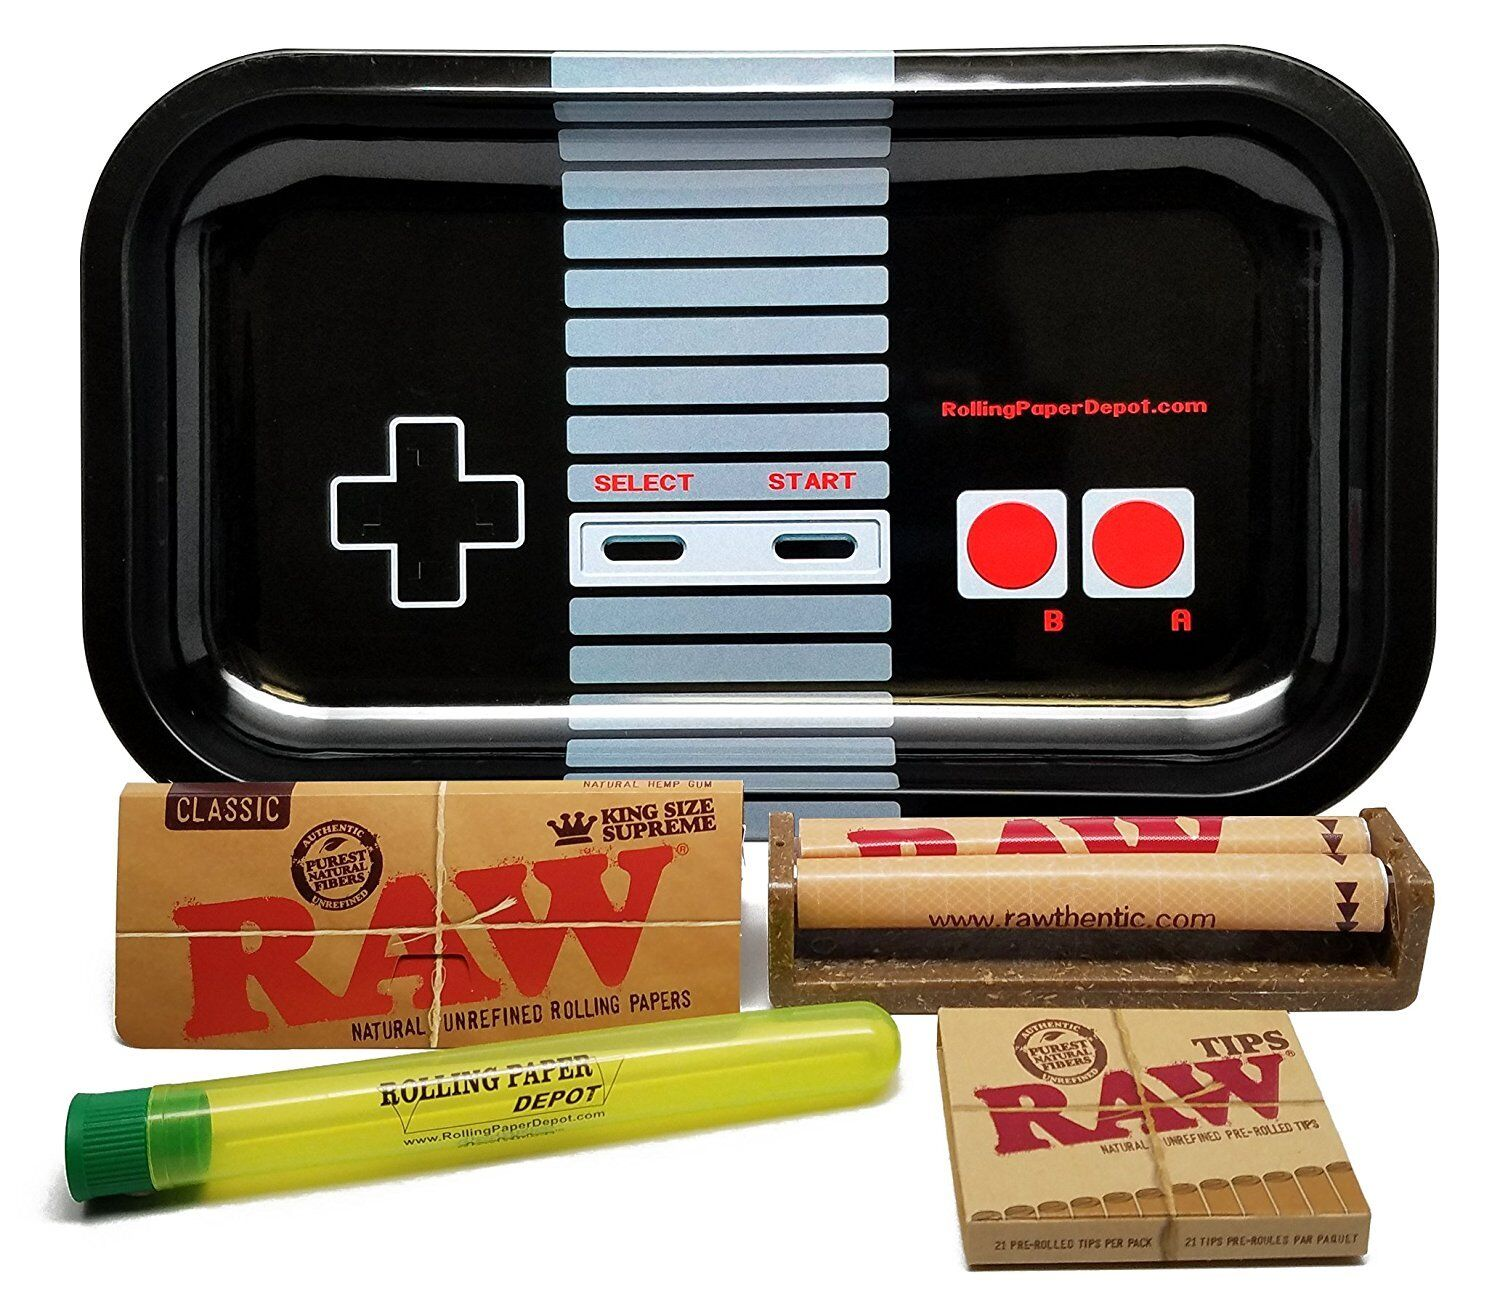 Bundle - 5 Items - RAW King Size Supreme, RPD Rolling Tray(Controller) and more